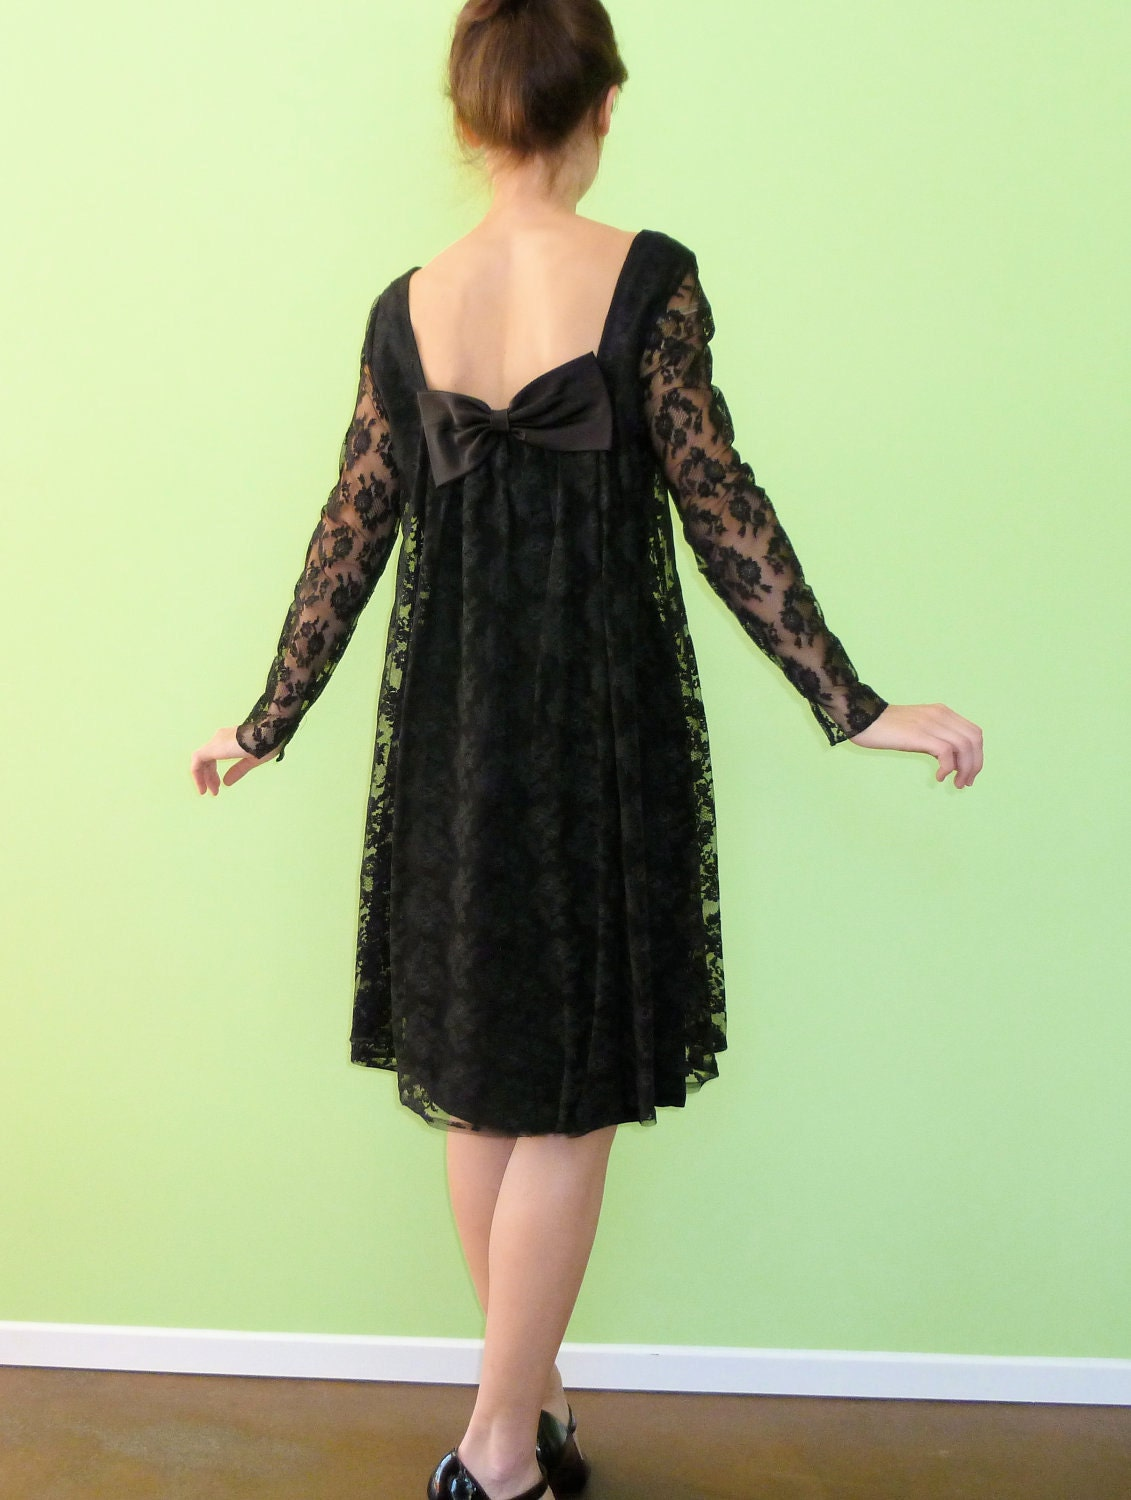 Black Lace Babydoll Dress Vintage 1960s Cocktail Mini By